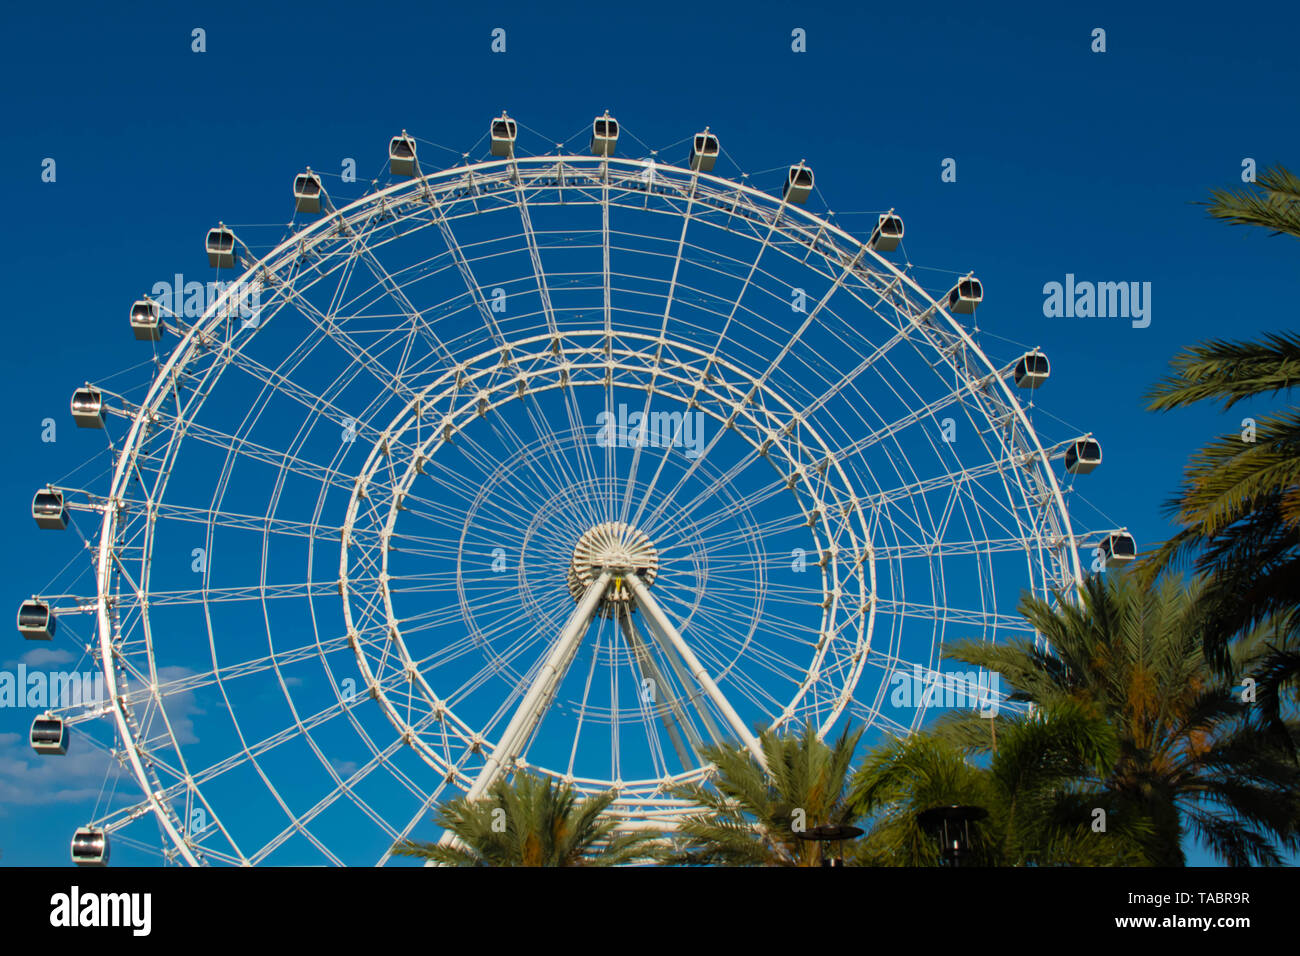 Orlando, Florida. May 16, 2019. Orlando Eye ride experience.The Wheel at ICON Park Orlando is a 400-foot-tall giant observation wheel in International Stock Photo